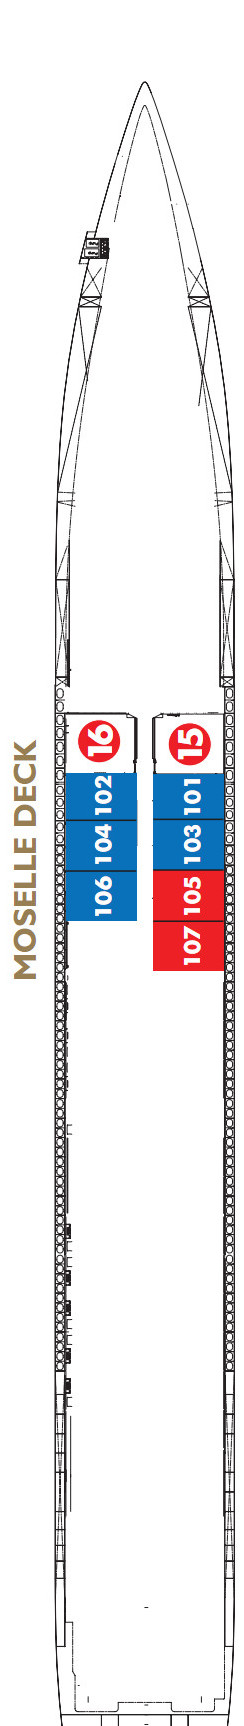 Scenic Gem Moselle Deck layout